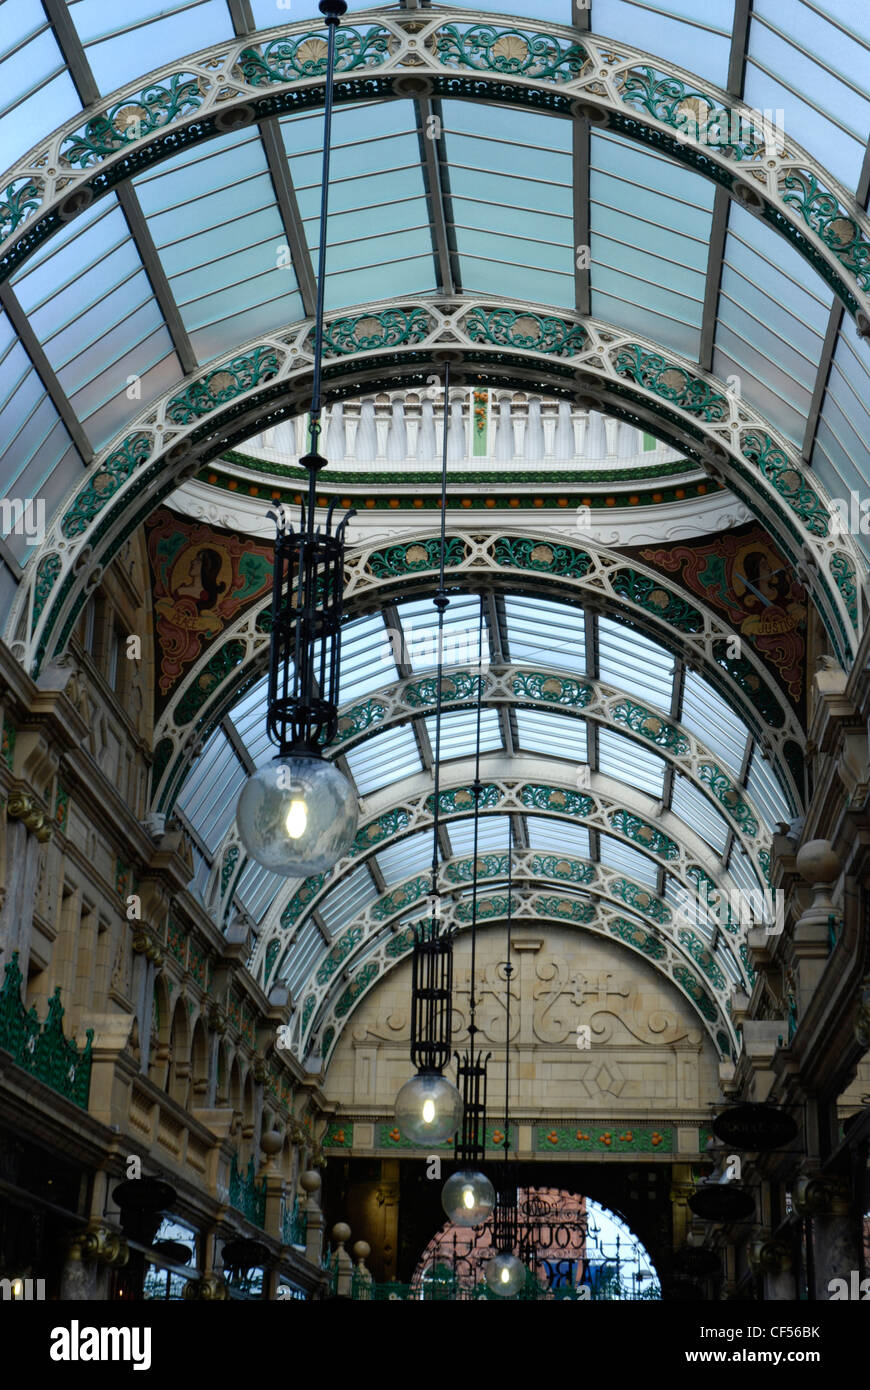 Interior view of the Victoria Quarter County Arcade in Leeds. - Stock Image